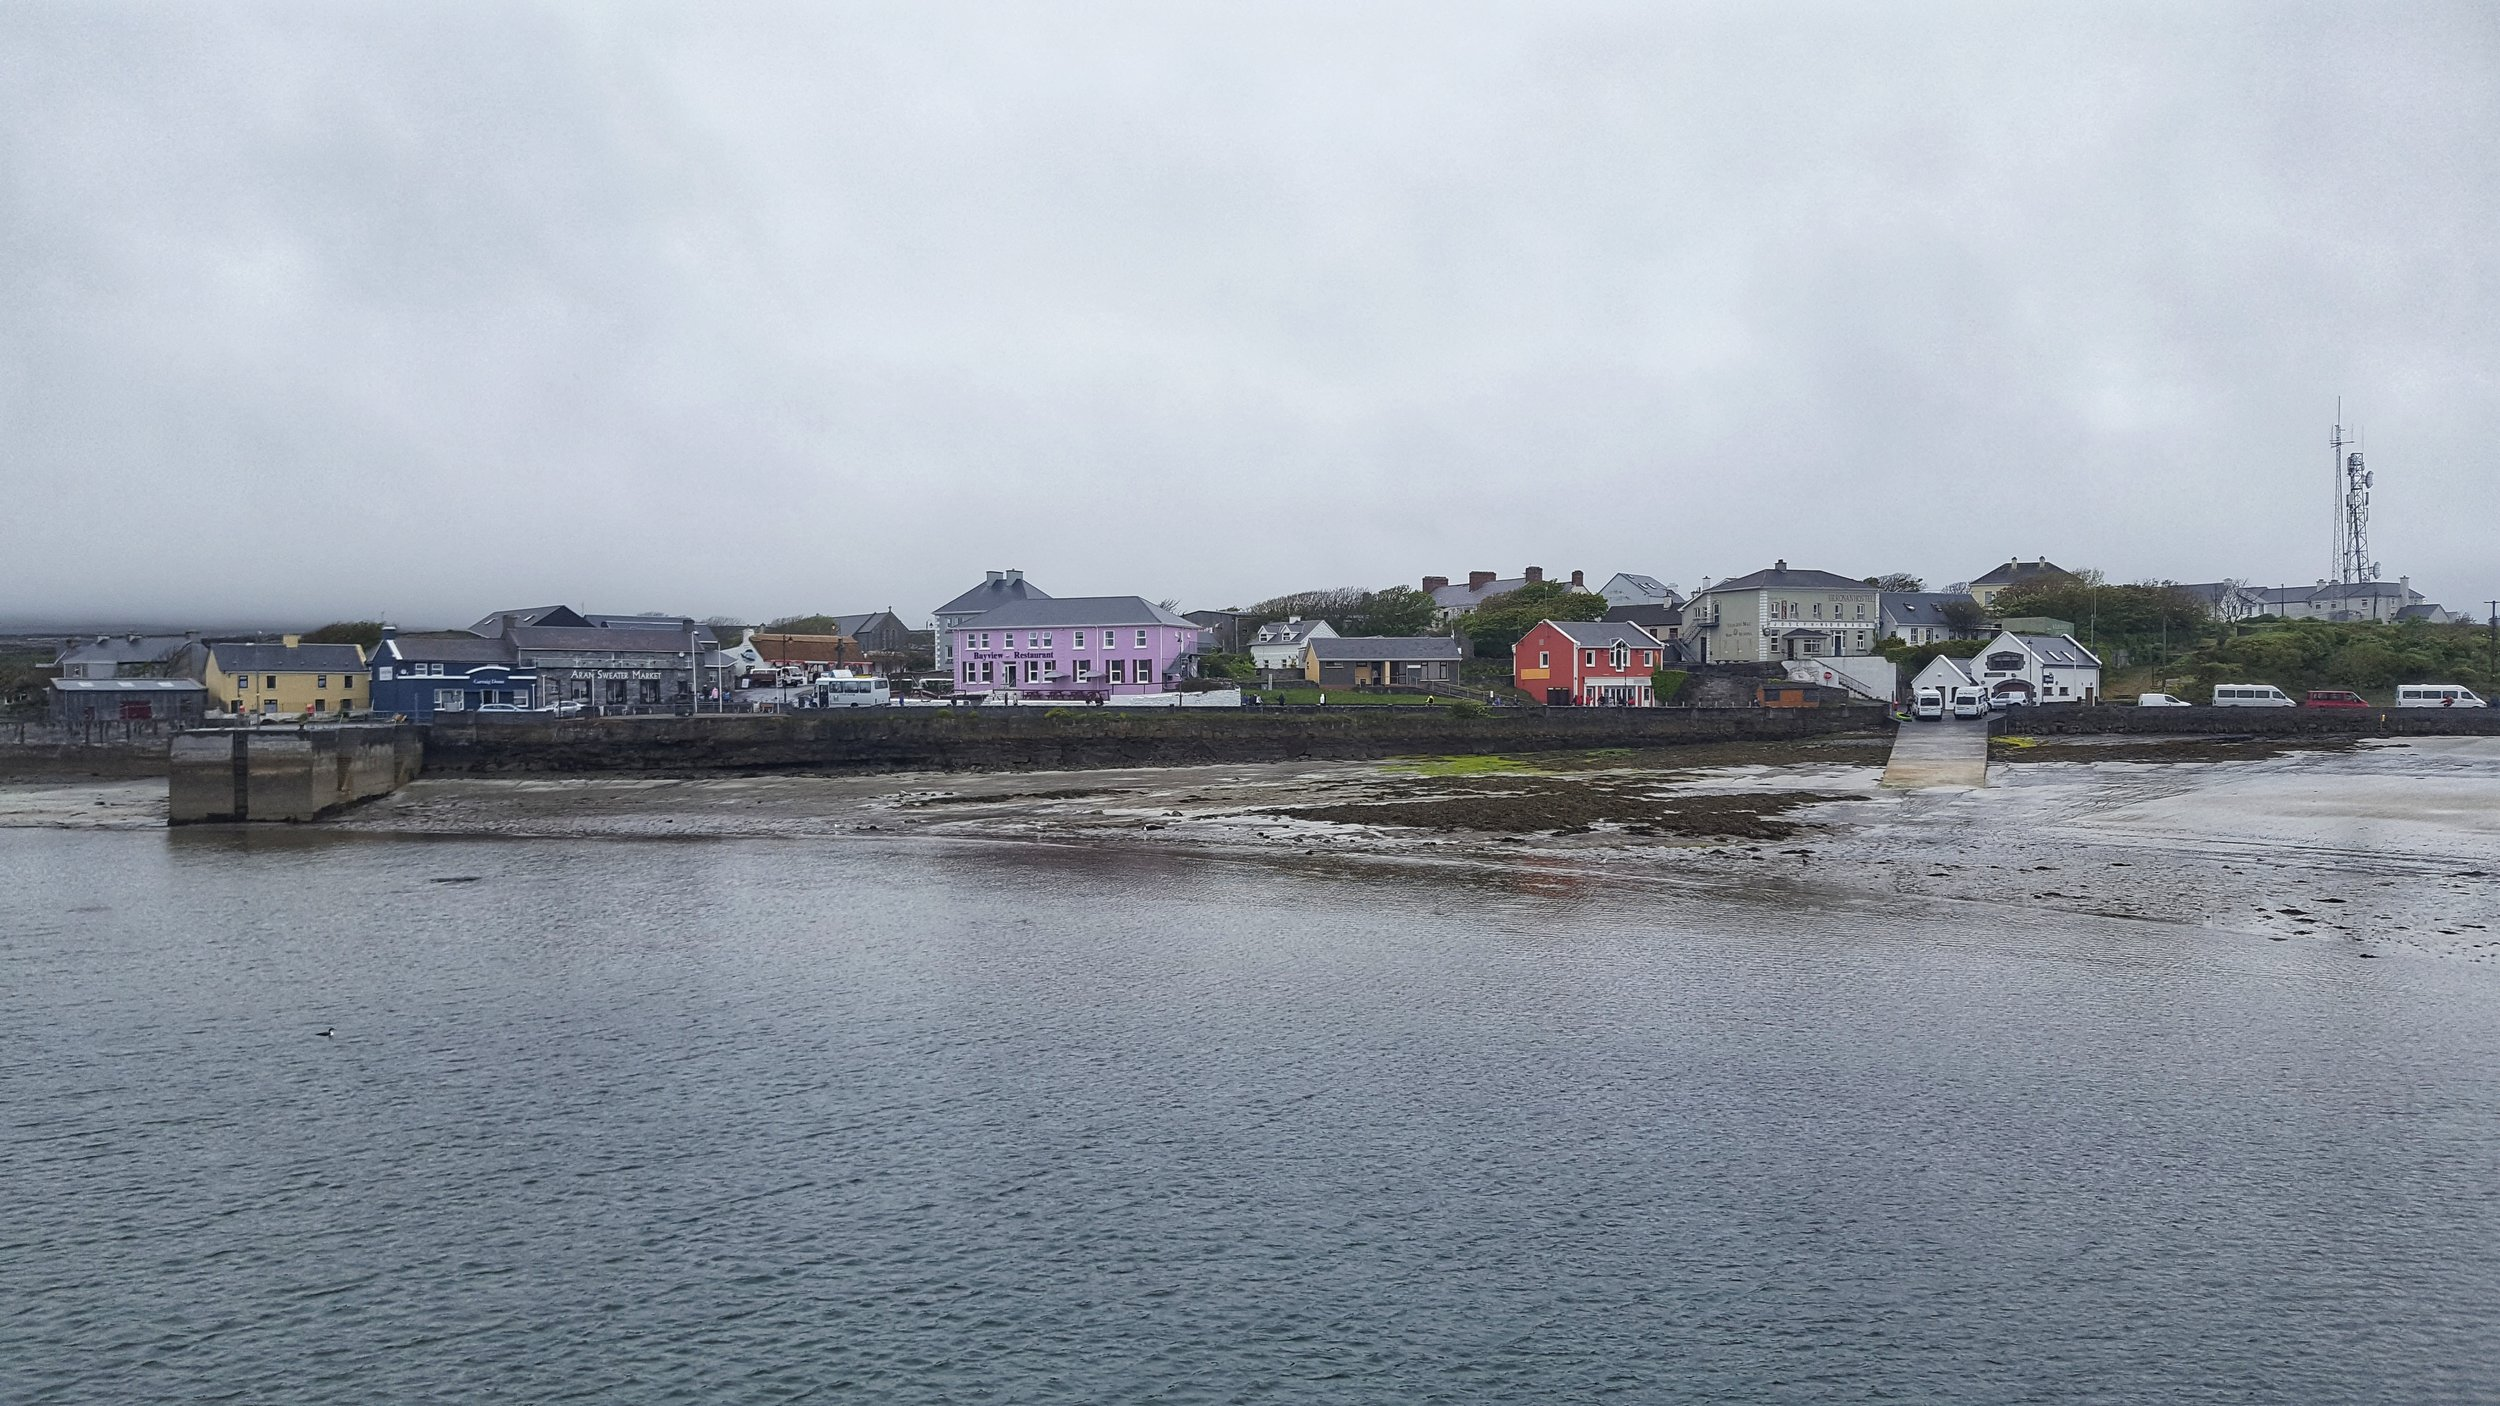 A view of Kilronan (Inishmore's main village) from the ferry - which is one of two ways to get to the Aran Islands. The other, by plane.